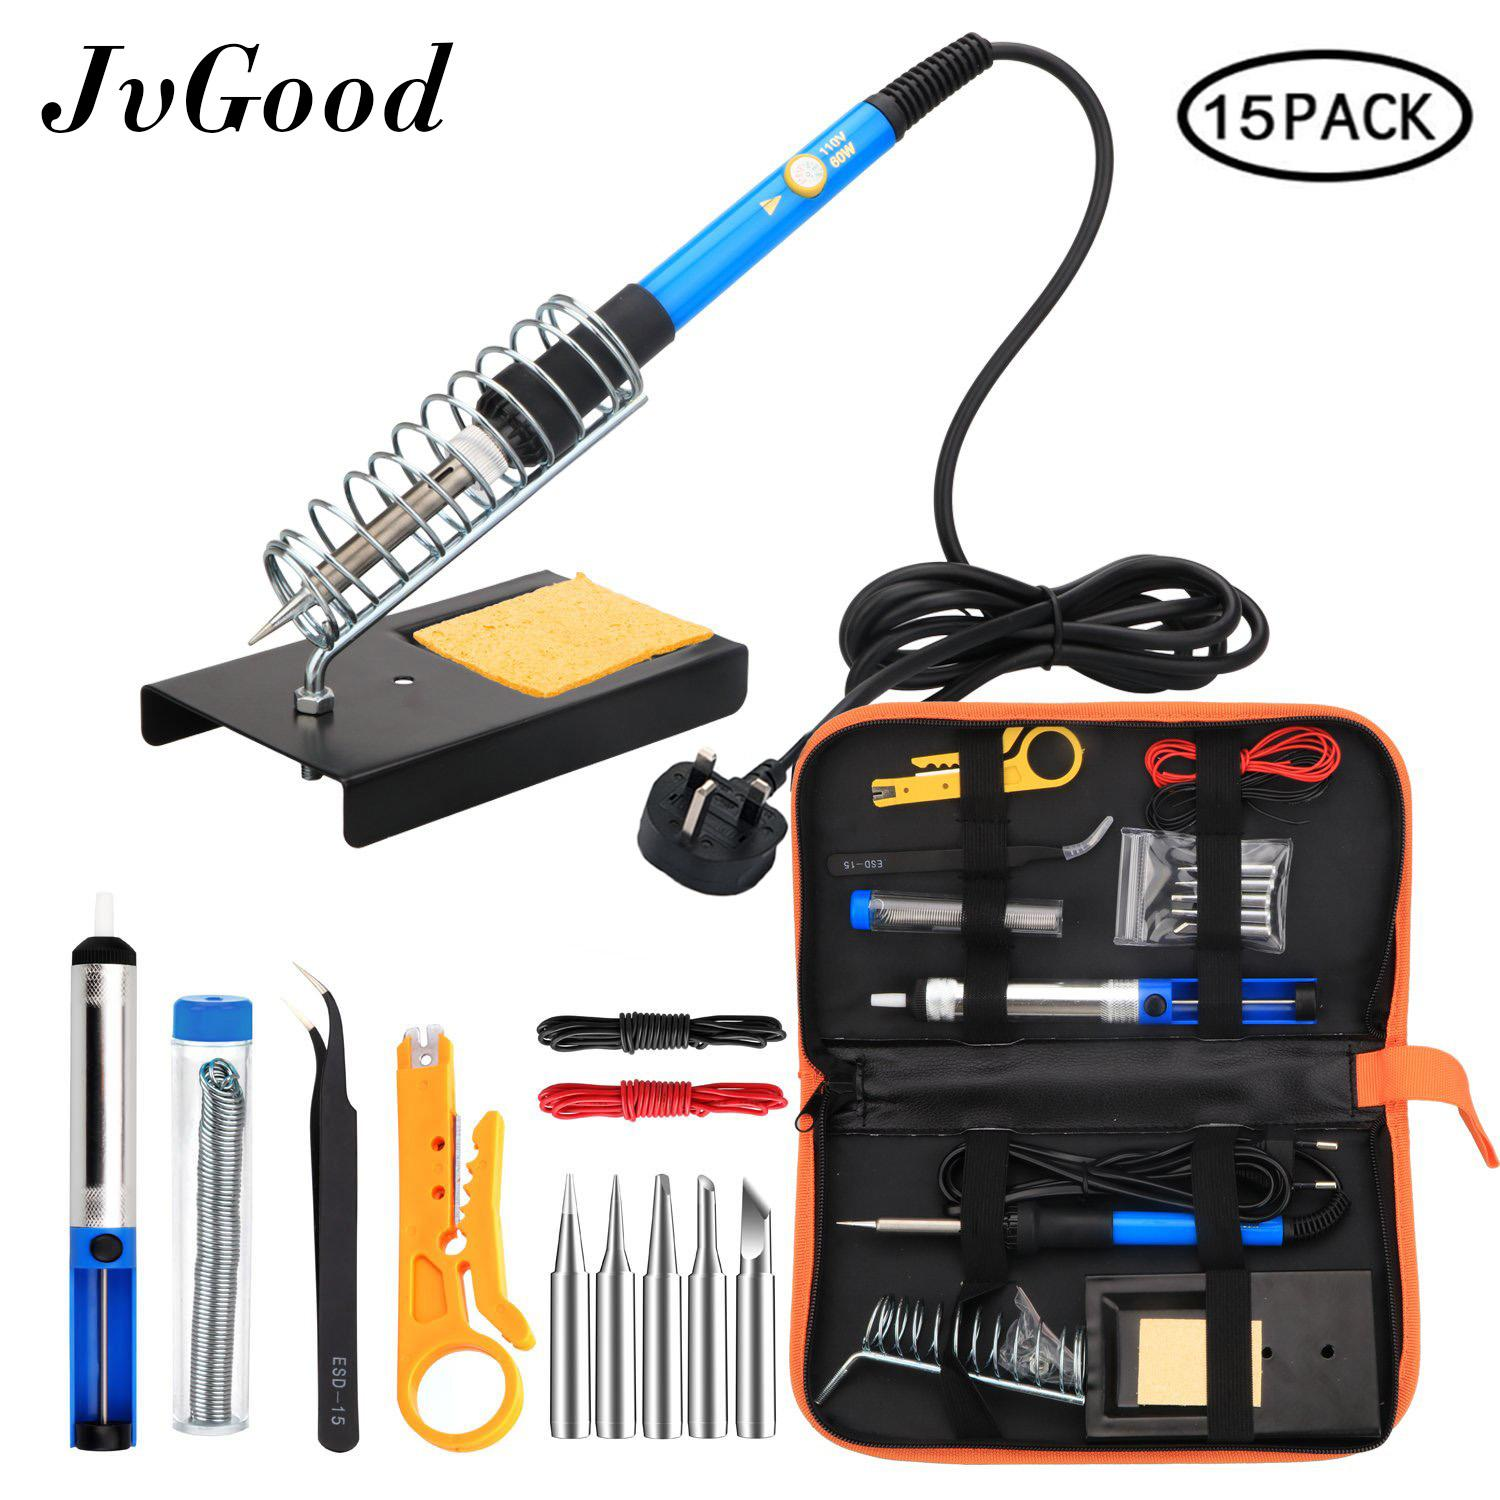 JvGood Soldering Iron Kit Electronics 15 Pieces Set 60W Adjustable Temperature Welding Tool, 5pcs Soldering